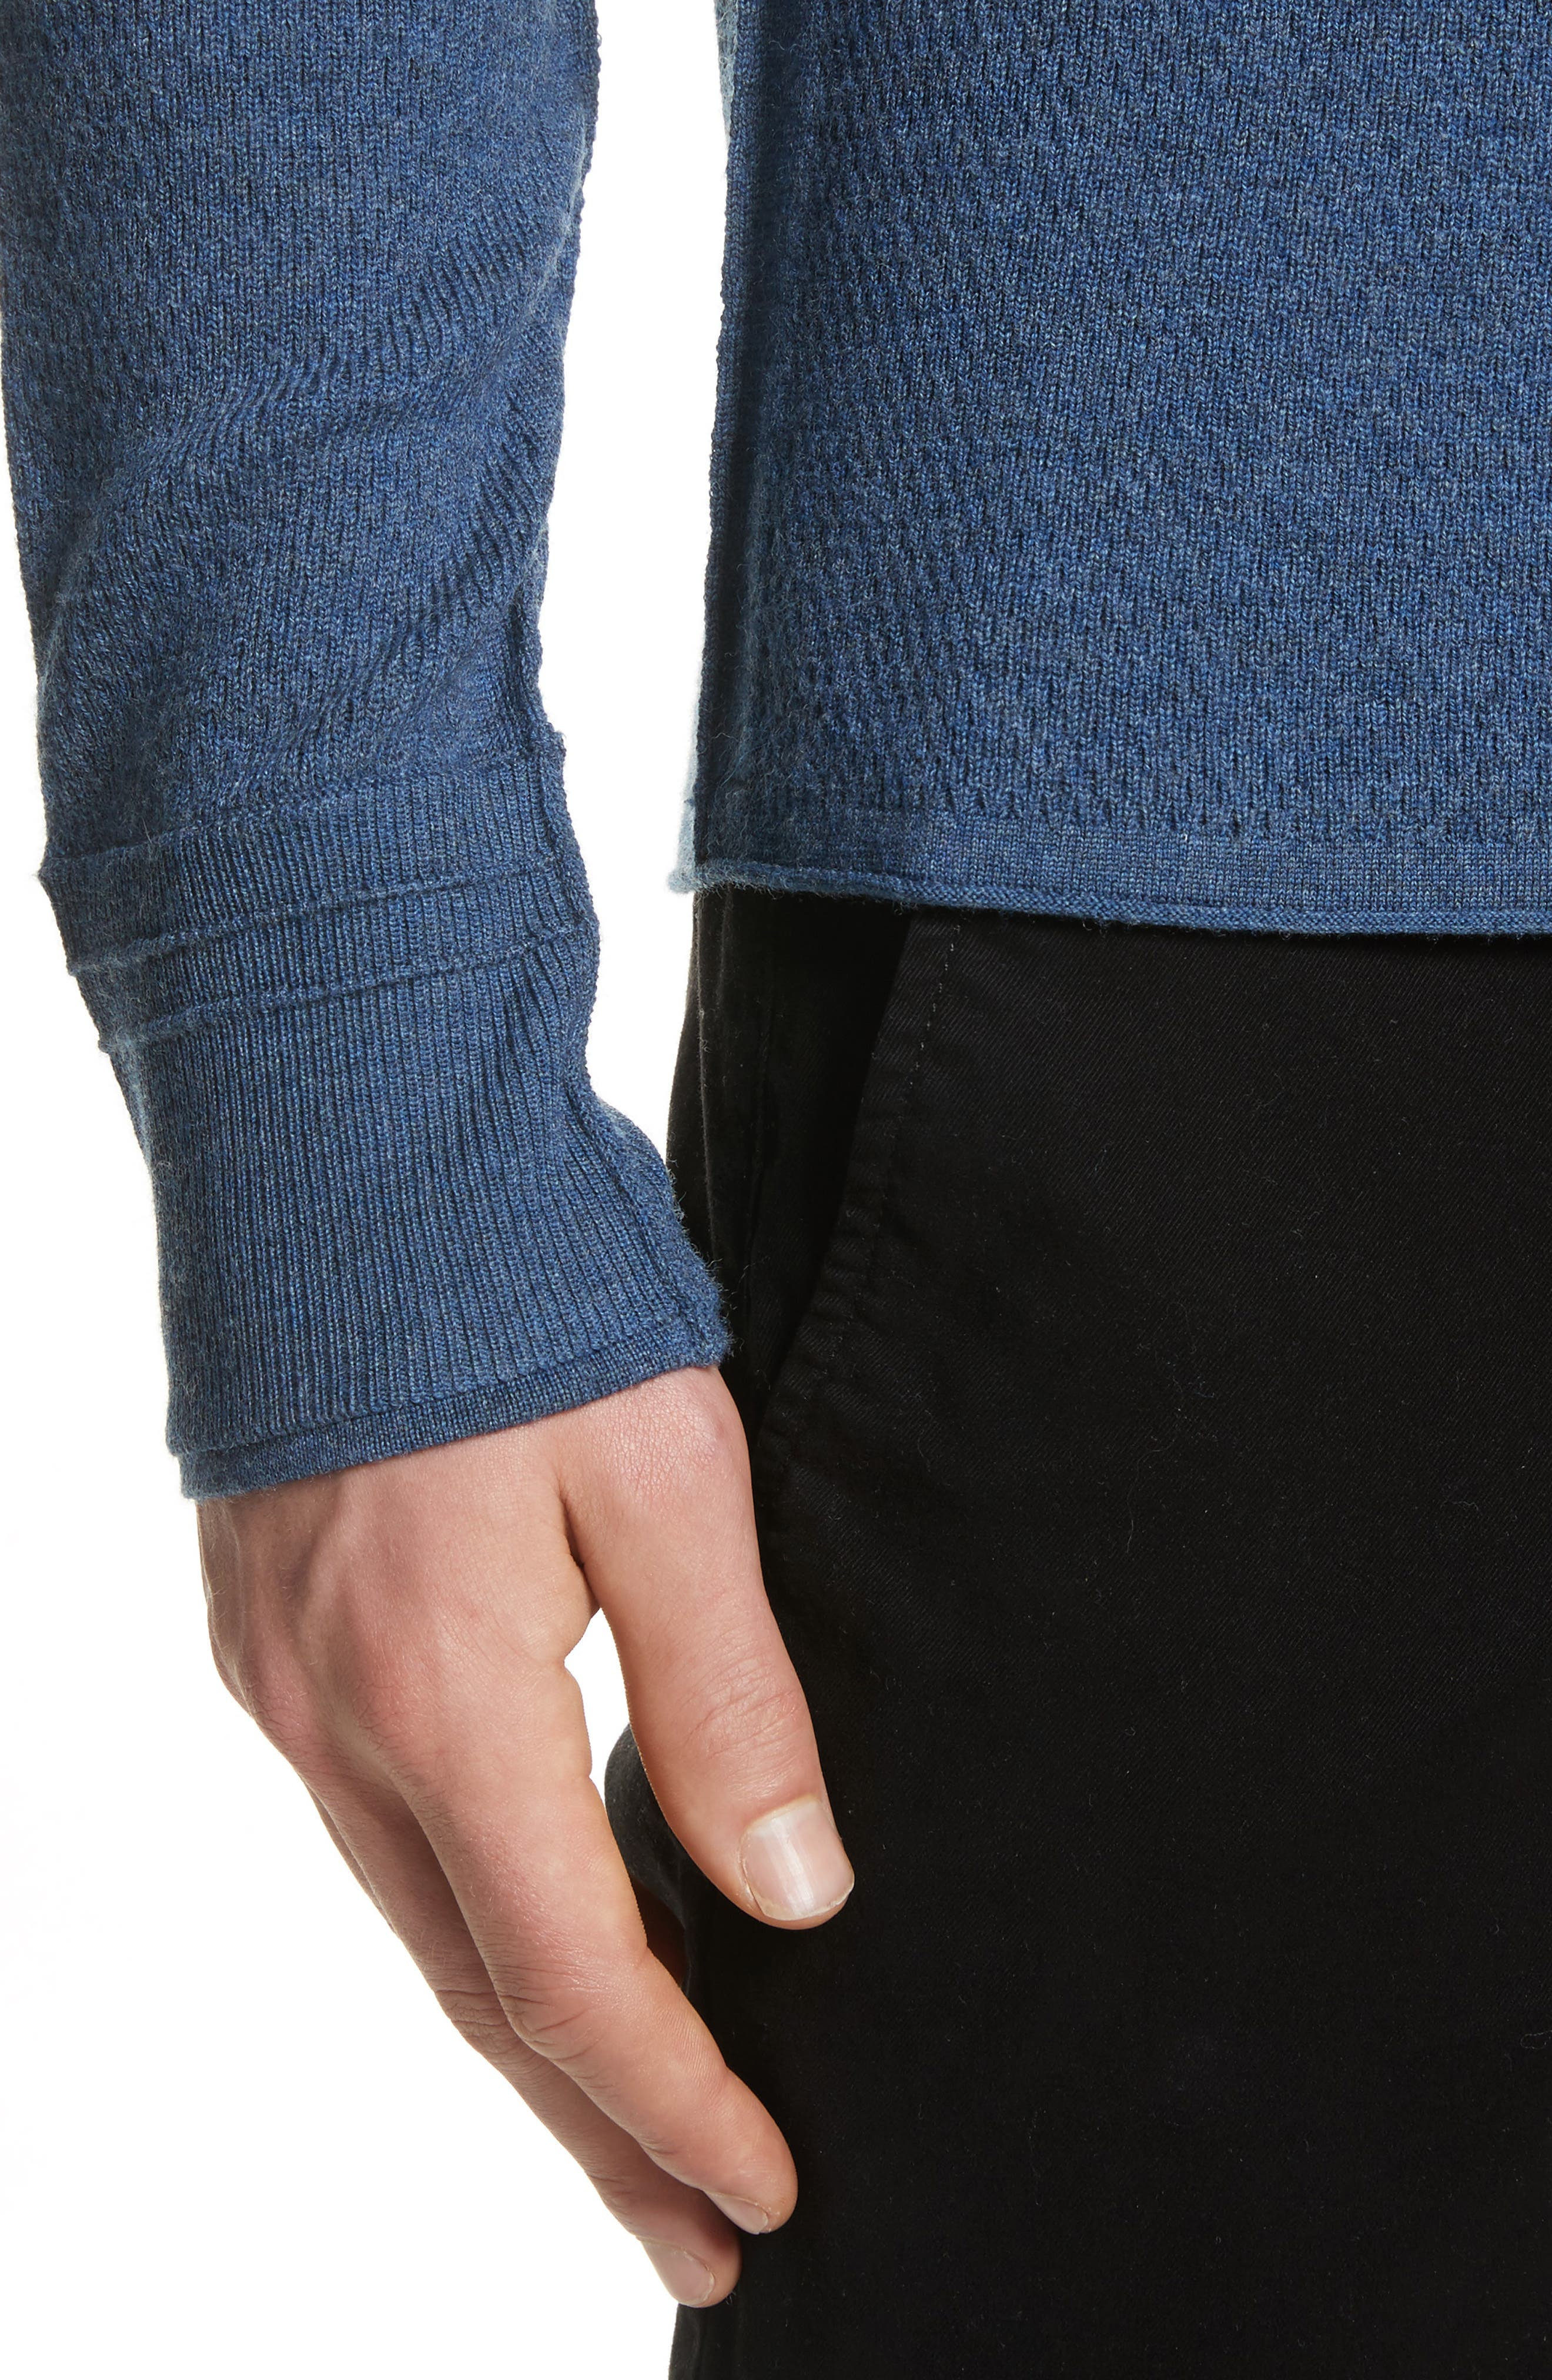 Gregory Merino Wool Blend Crewneck Sweater,                             Alternate thumbnail 4, color,                             Heather Blue